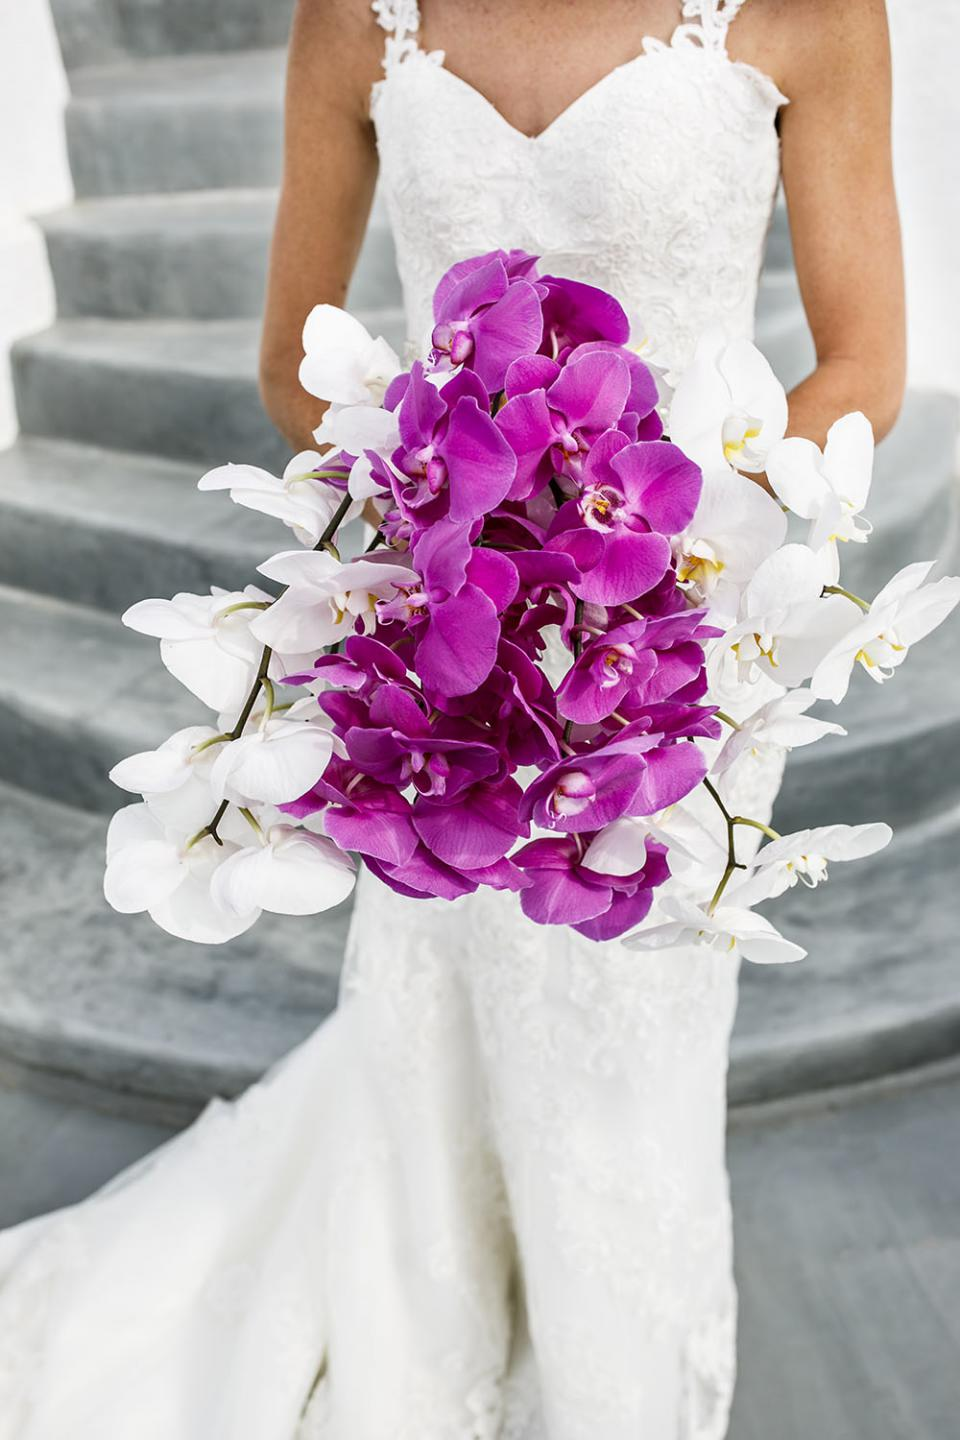 Lush white and pink orchids bouquet